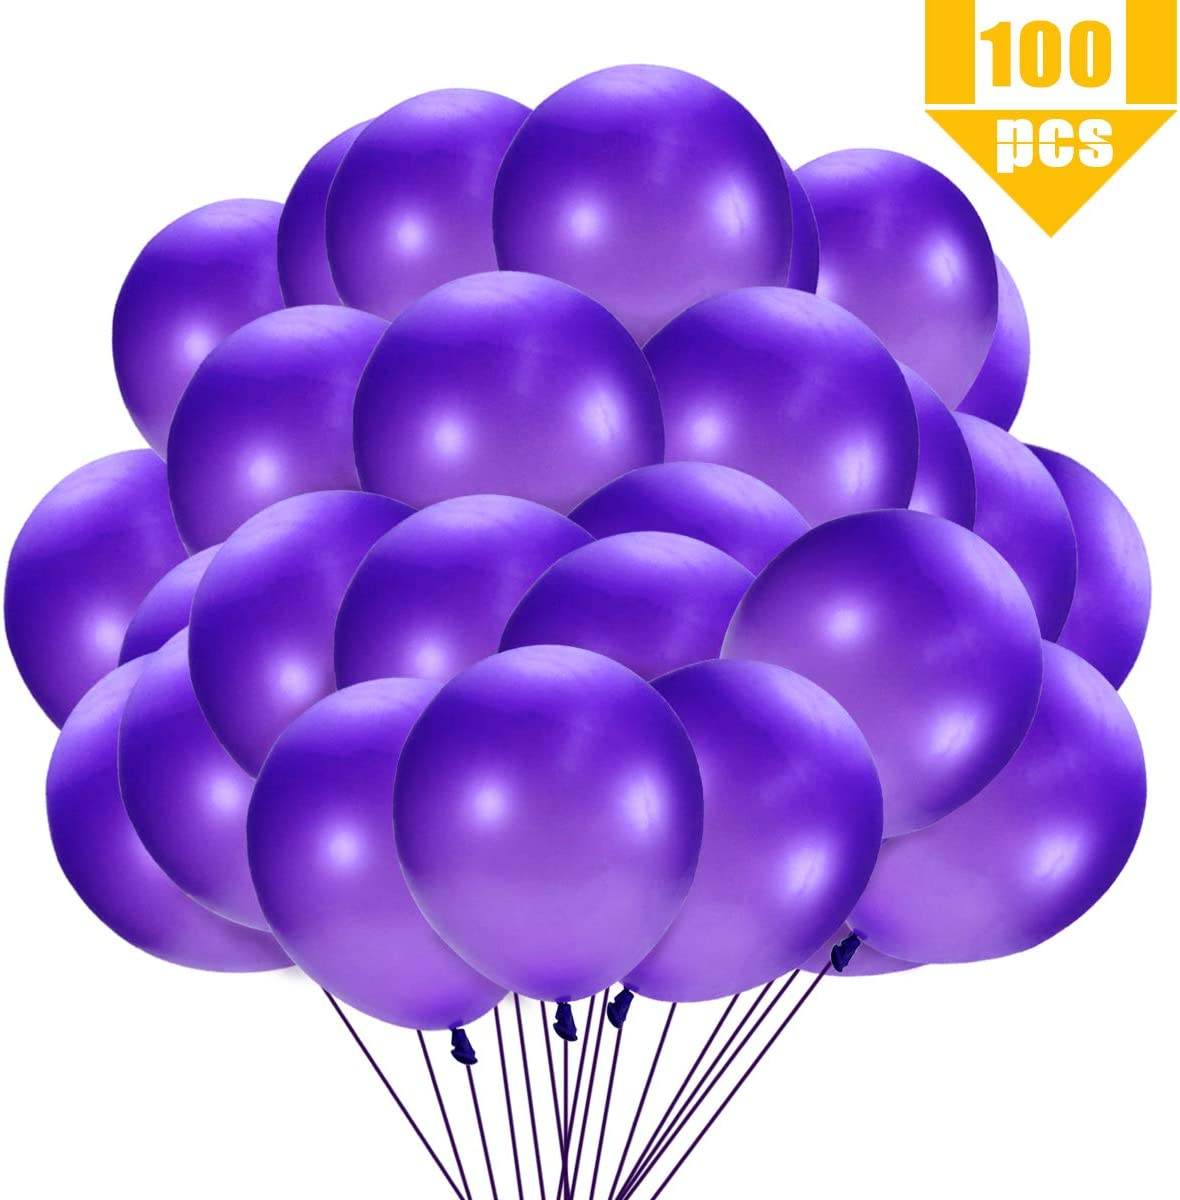 12 to 14 After Inflation, 3.2g Agreatca 100 Pcs 12 Thicken Pearlescent Purple Shiny Latex Balloons Party Balloons for Wedding or Party Decorations